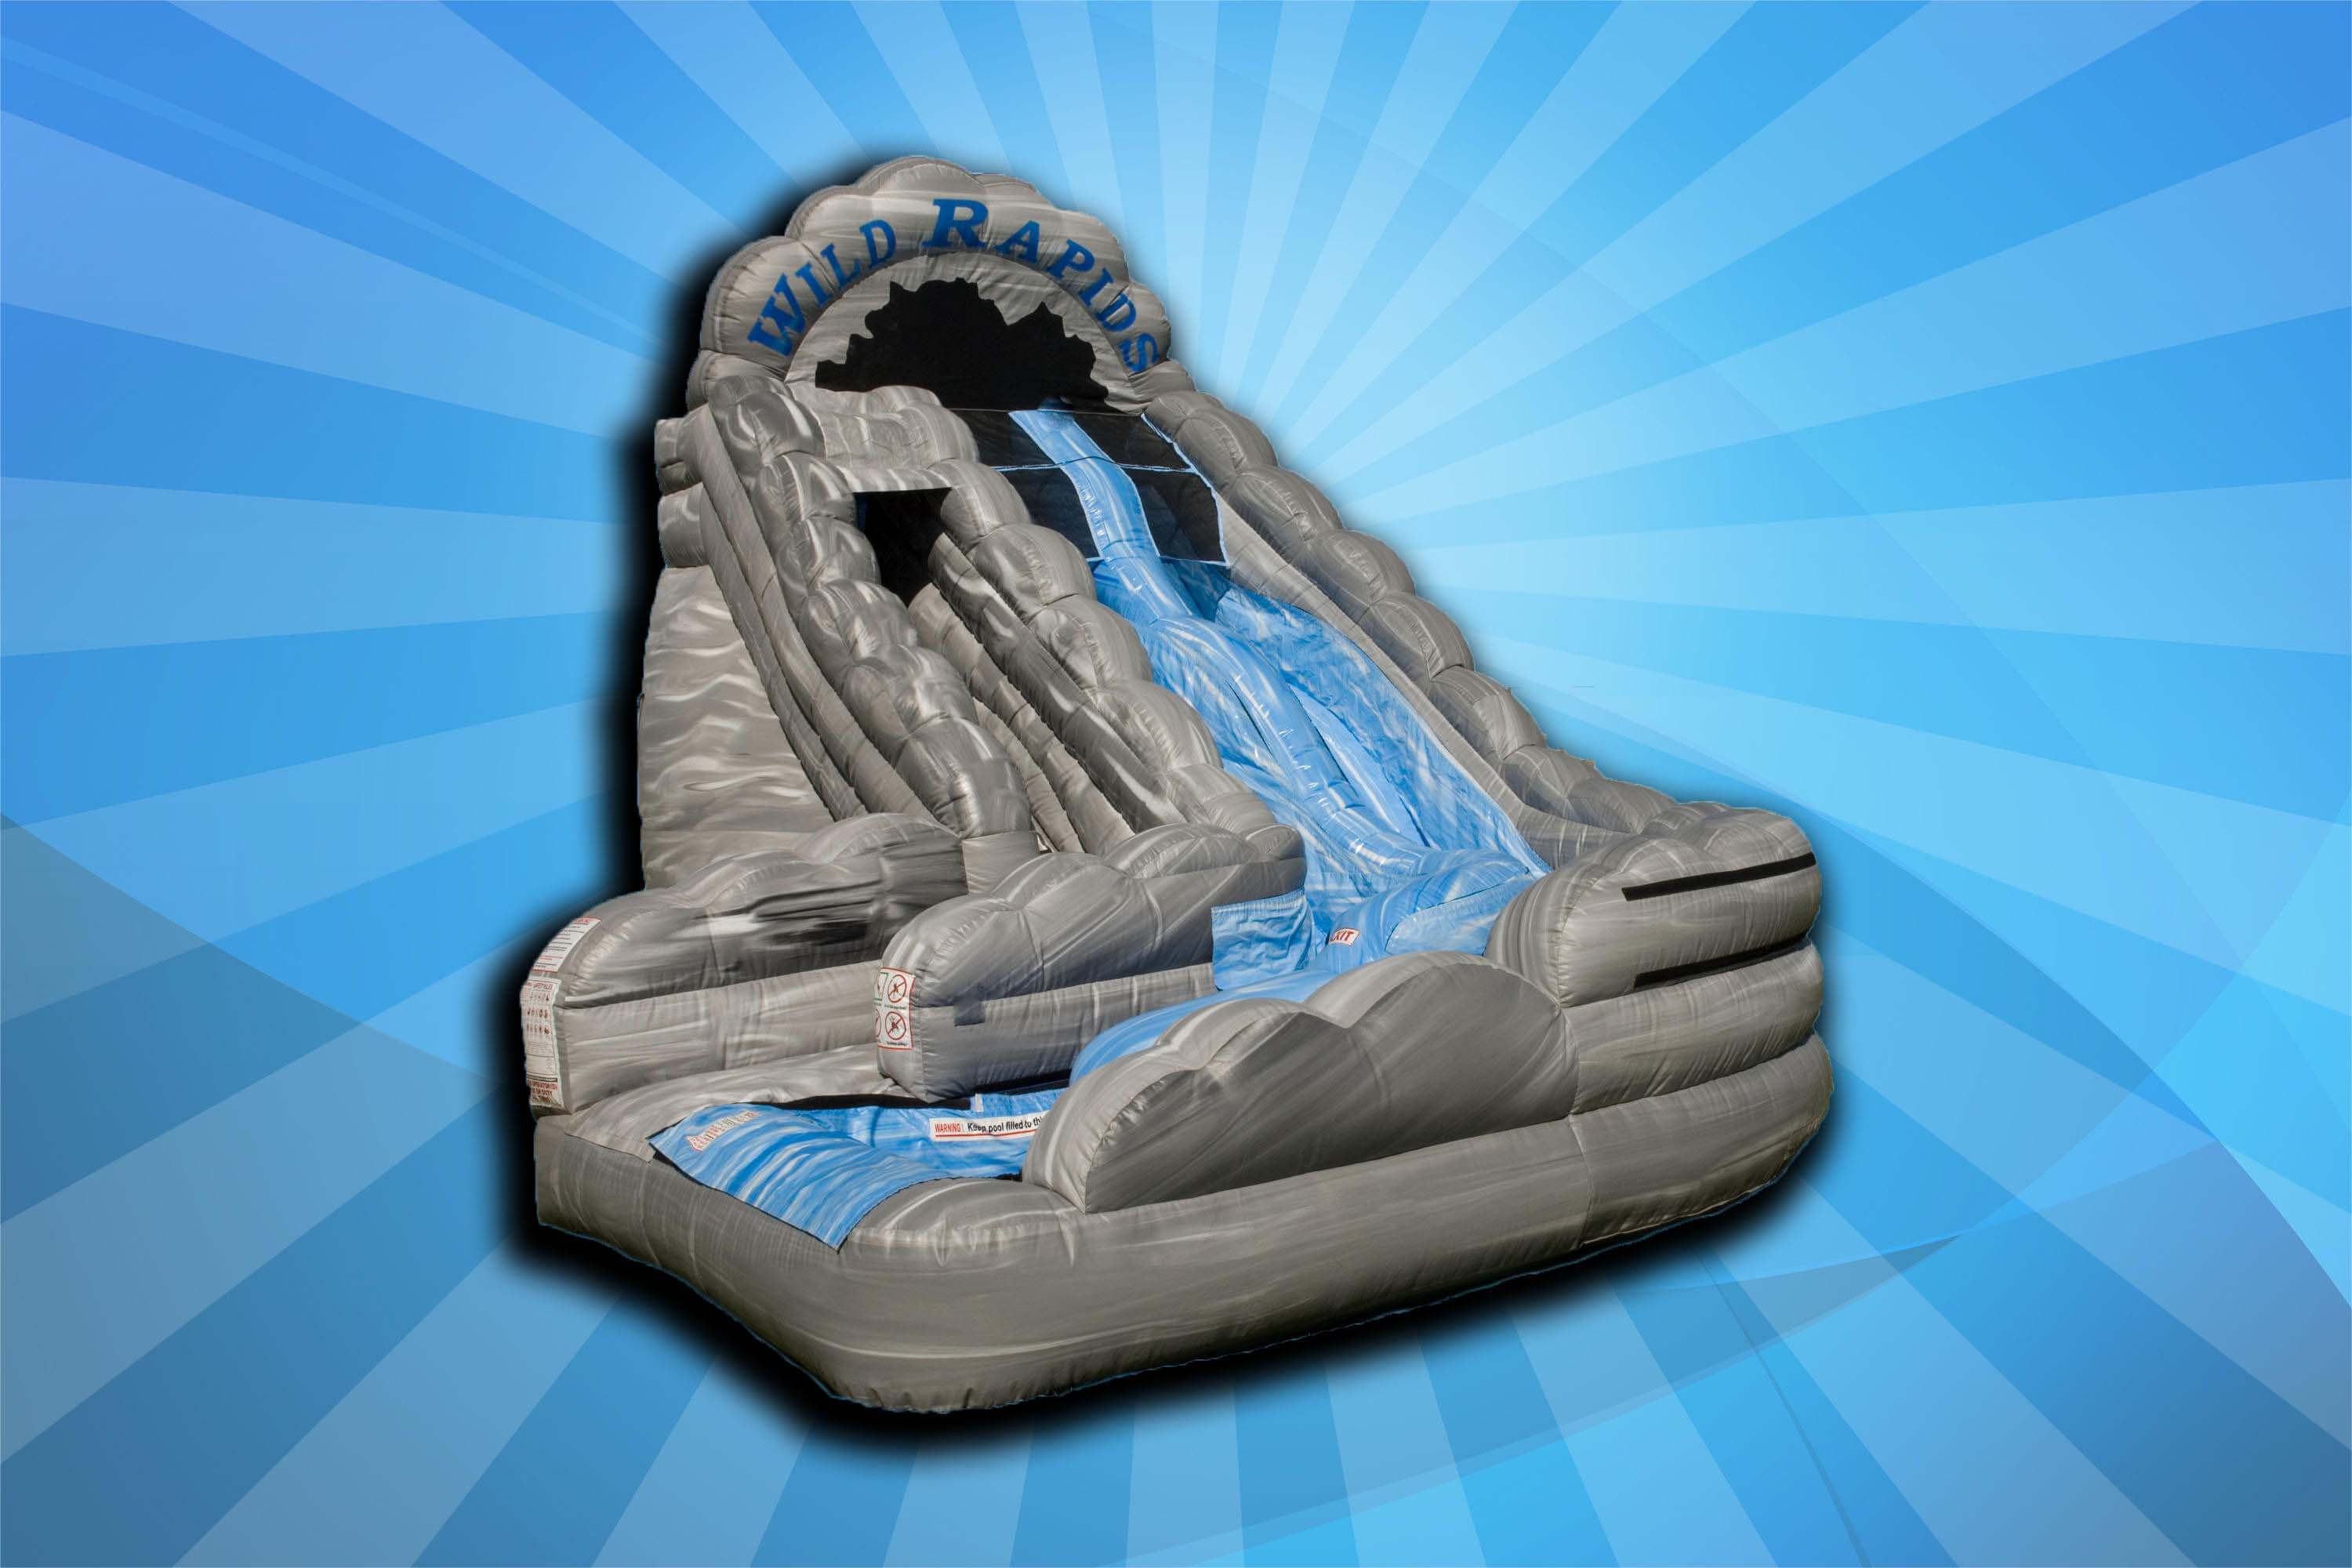 Inflatable water slide against blue background.